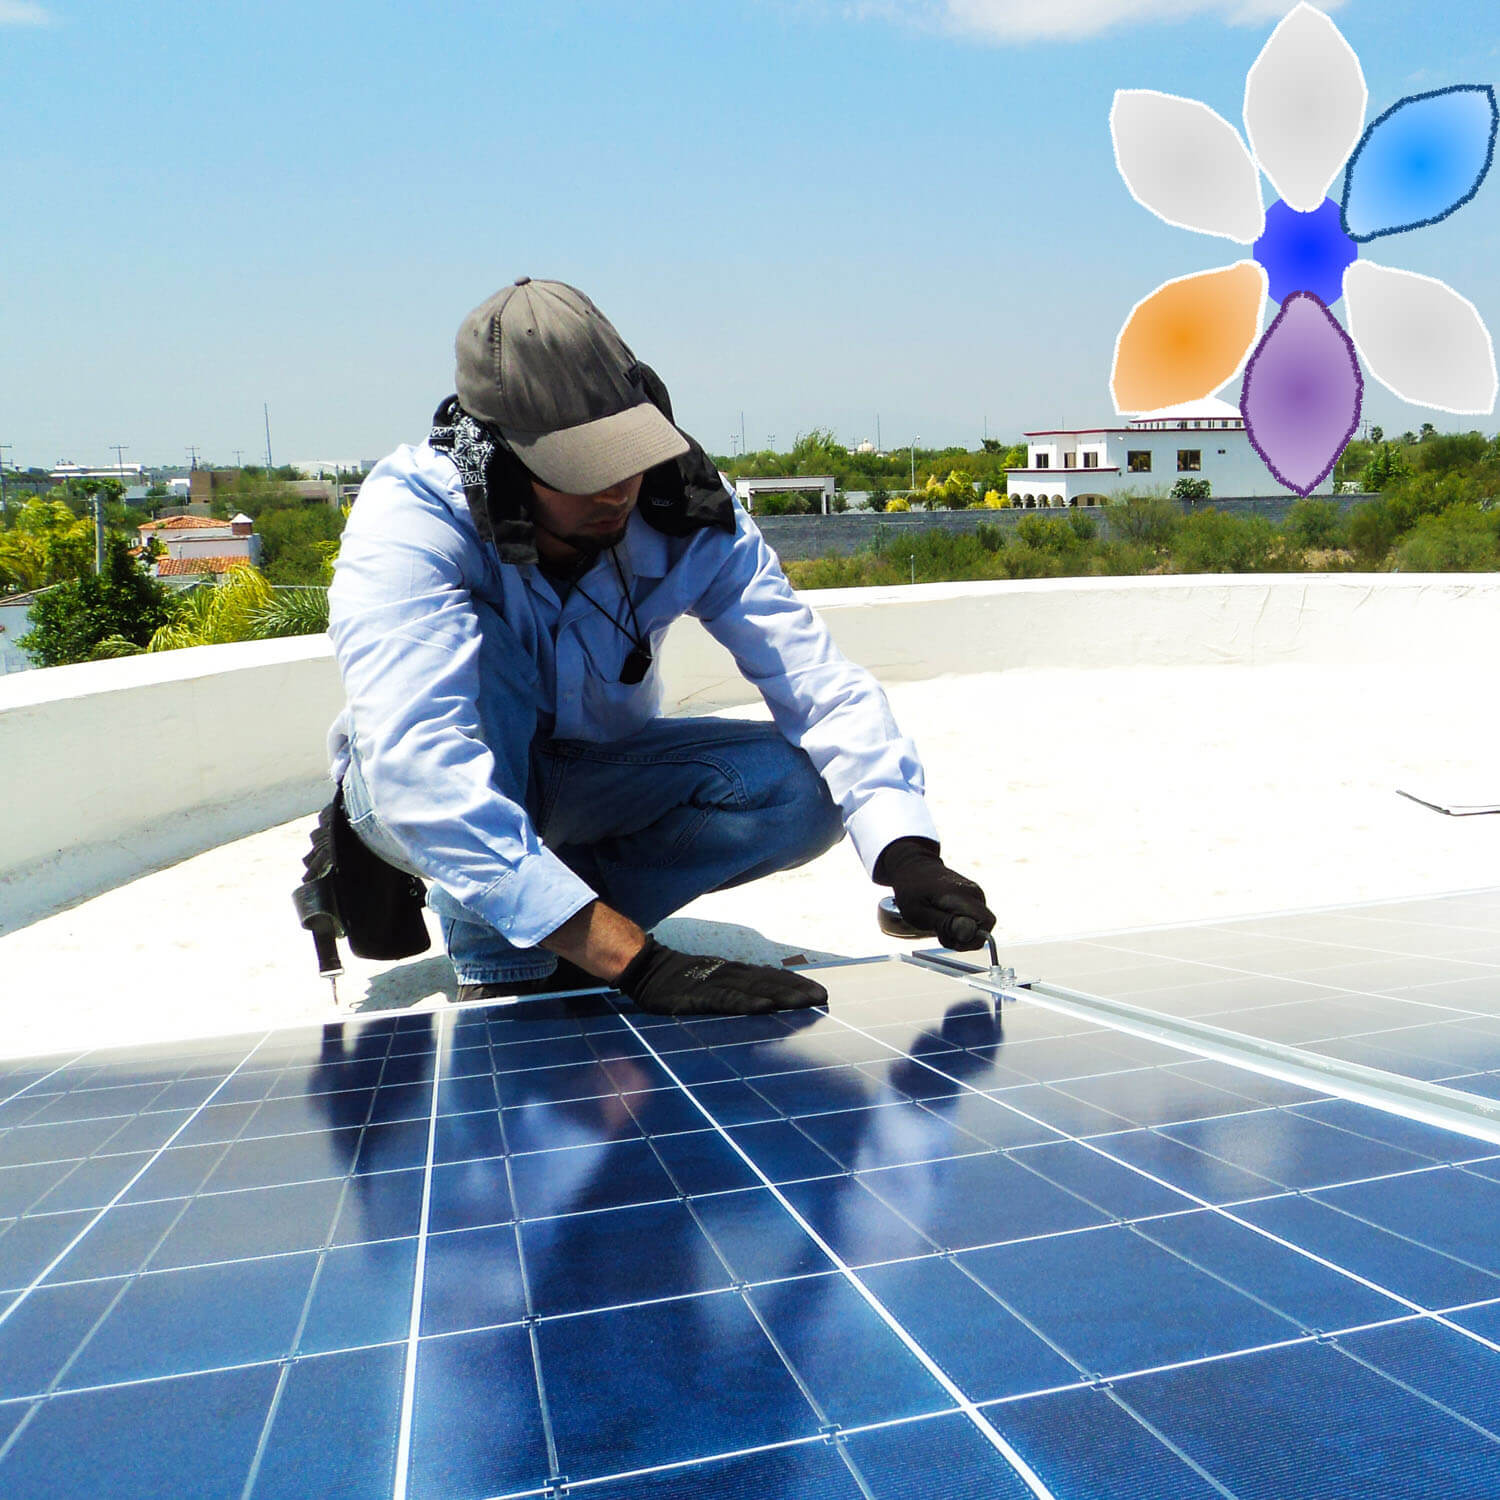 Solar job training increases opportunities for veterans | Climate